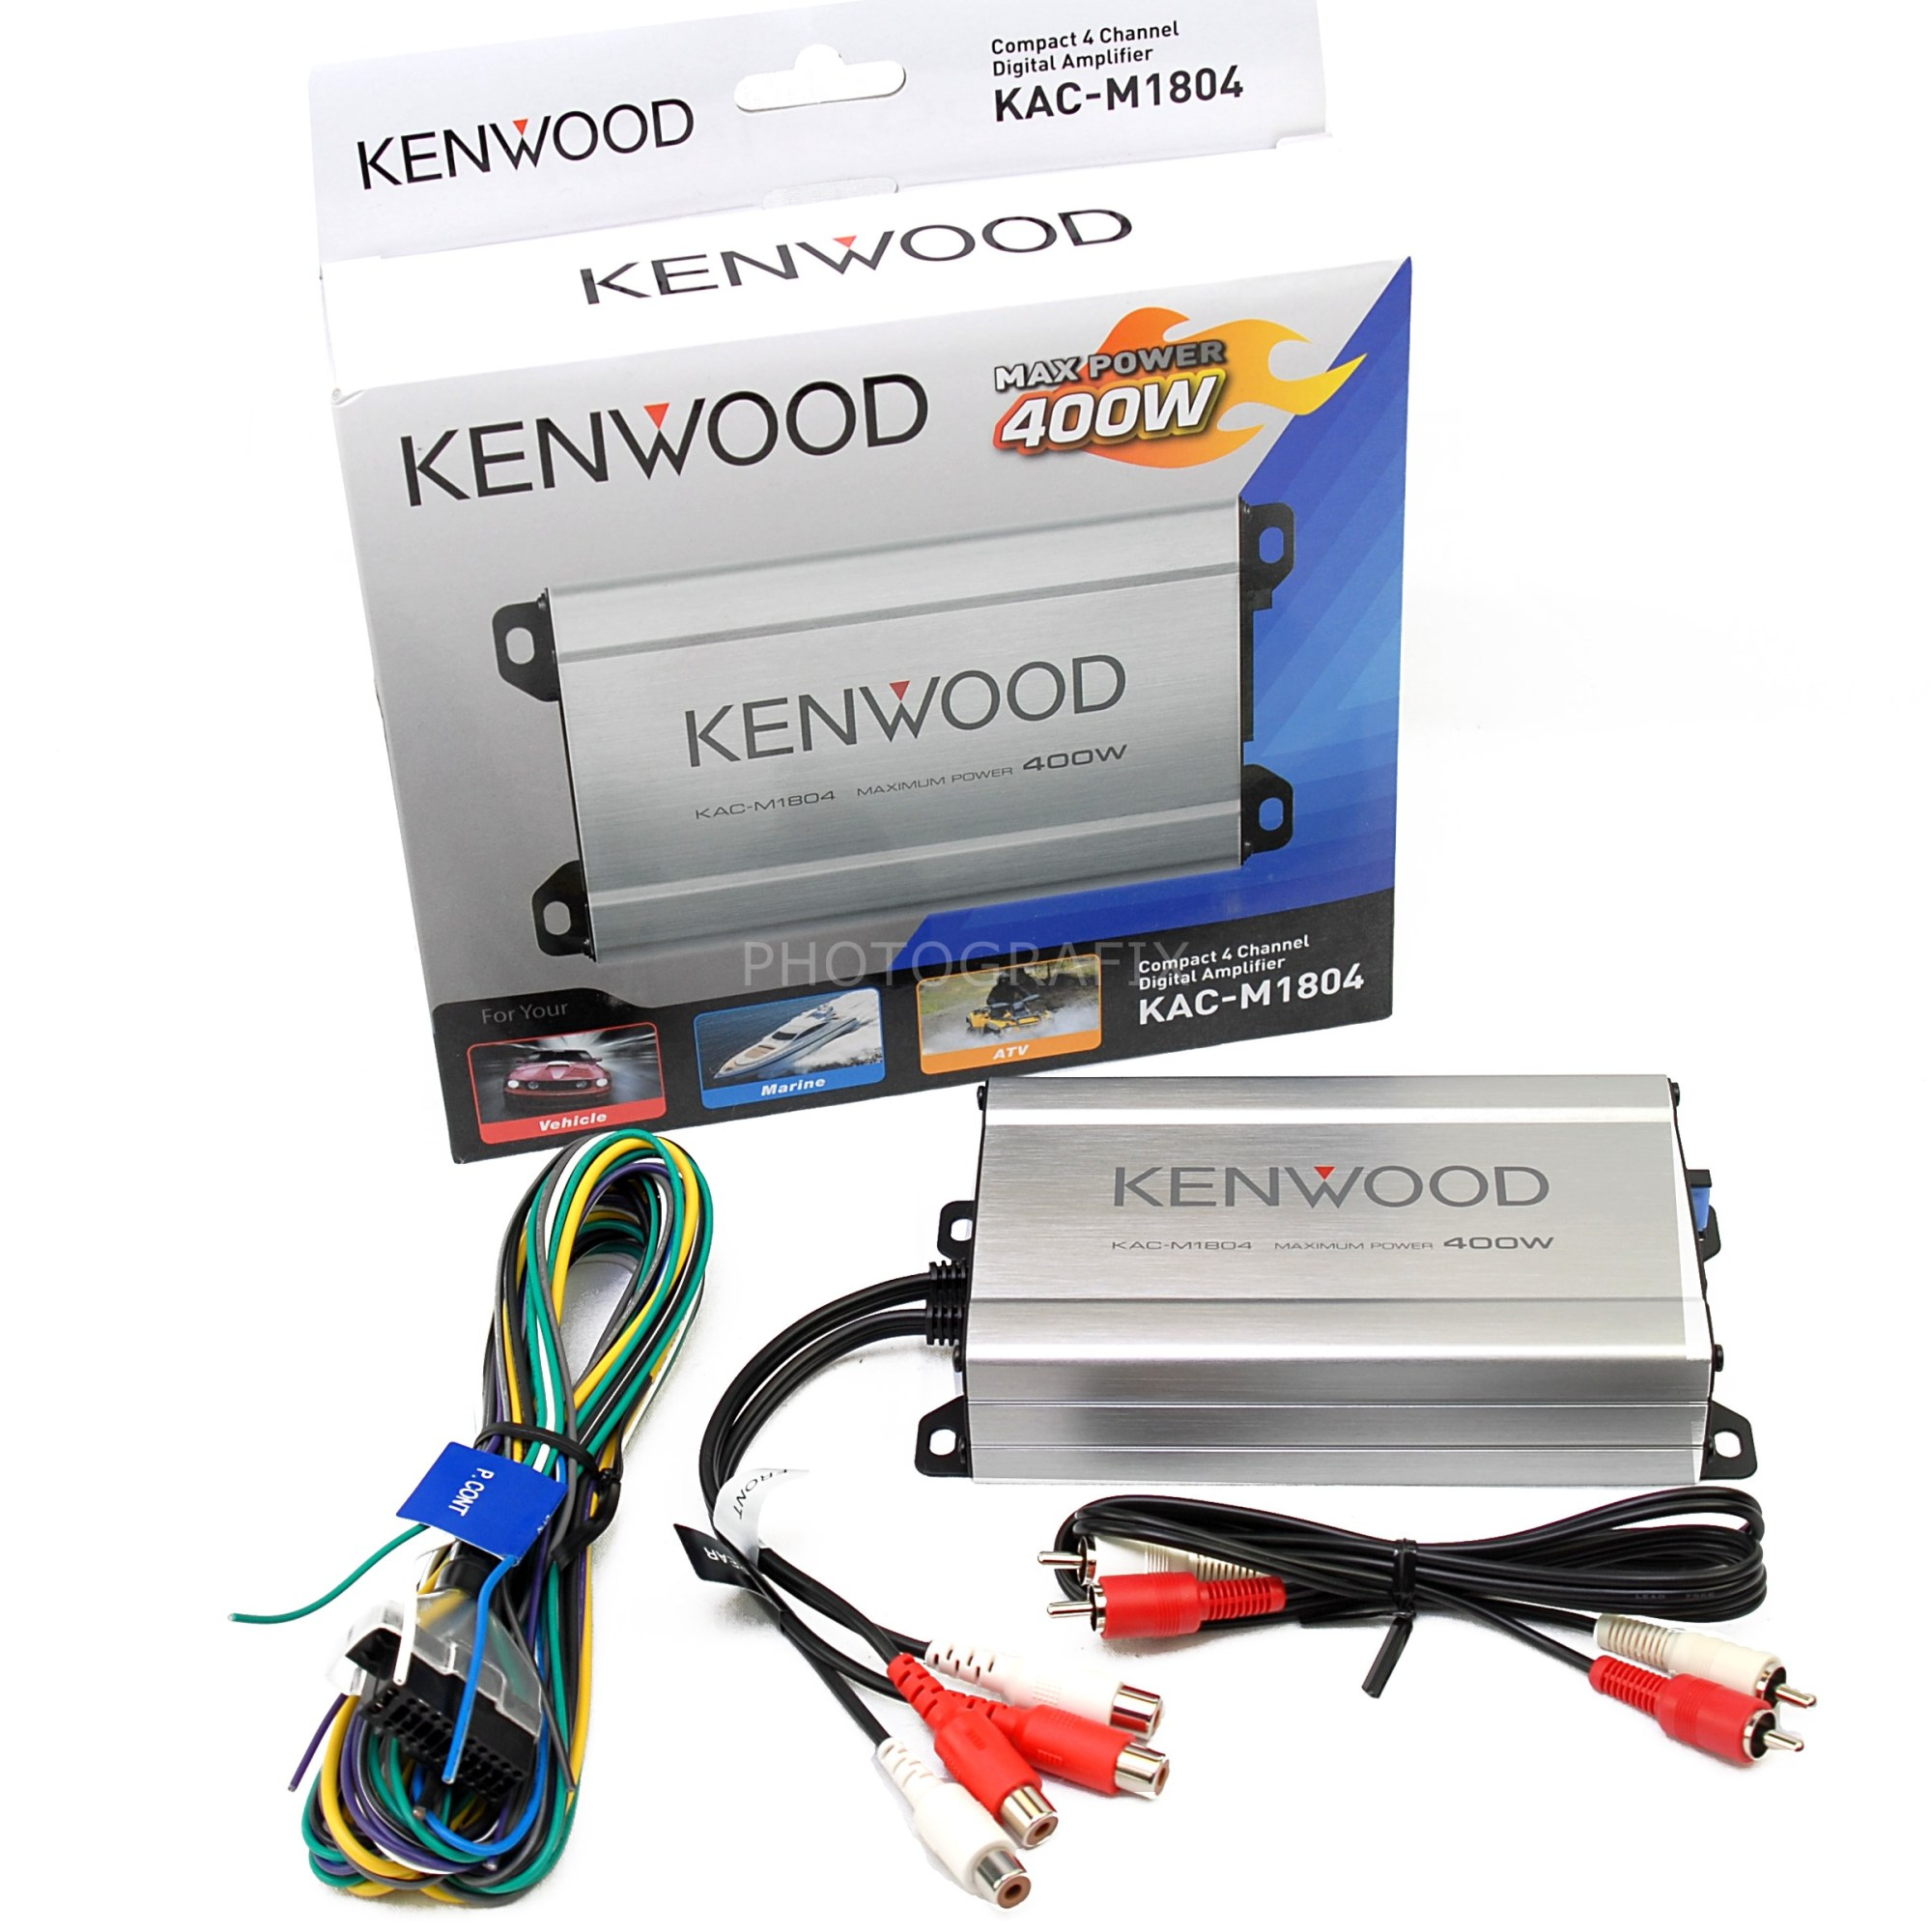 hight resolution of  kenkacm1804 itemimageurl1 kenwood kac m3004 wiring diagram kenwood kdc mp342u wiring harness kenwood kac 7205 wiring diagram